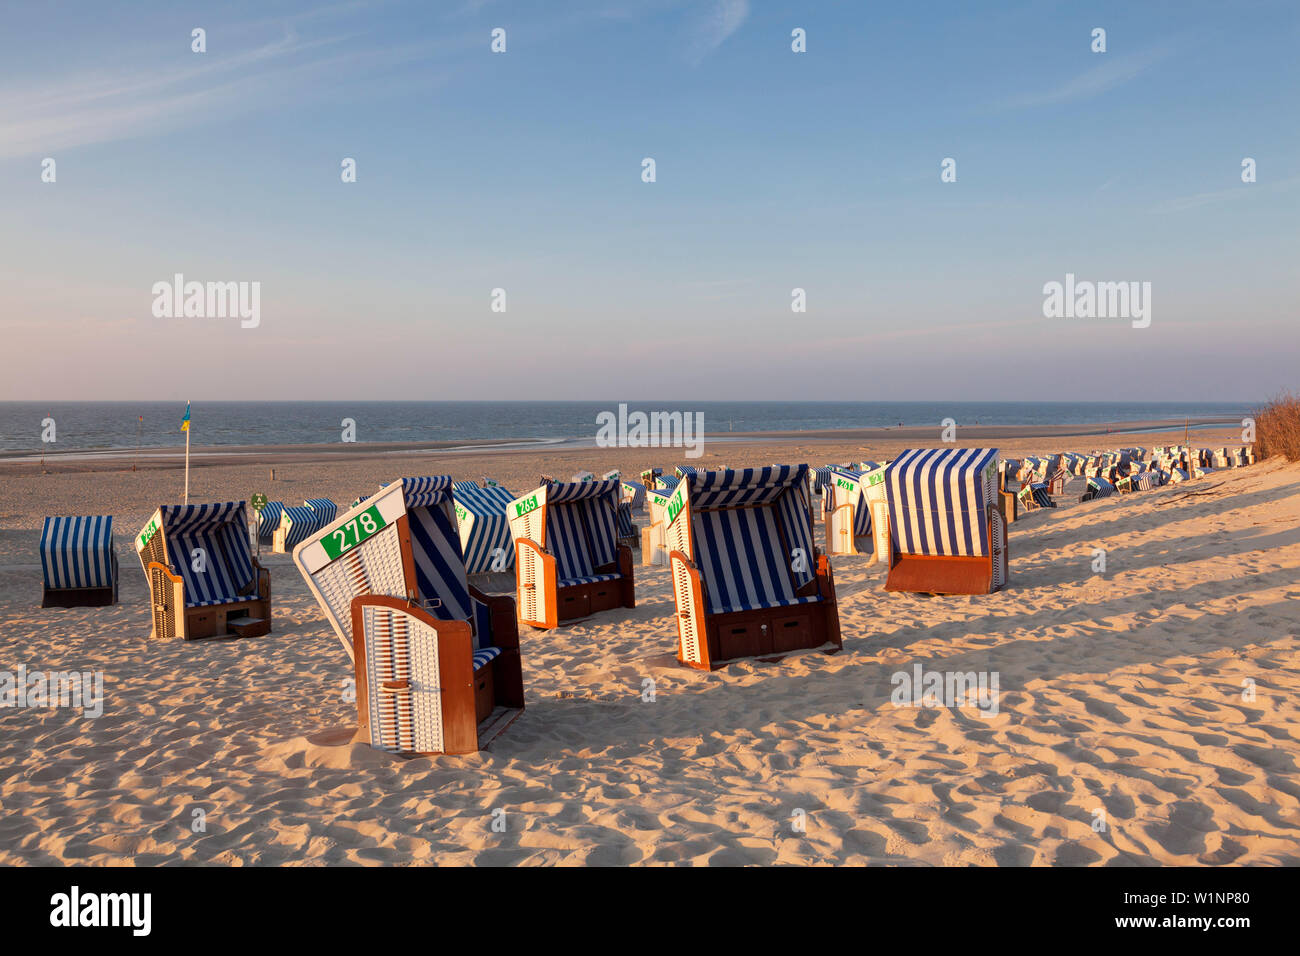 Beach chairs on the beach, Nordstrand, Norderney, Ostfriesland, Lower Saxony, Germany Stock Photo